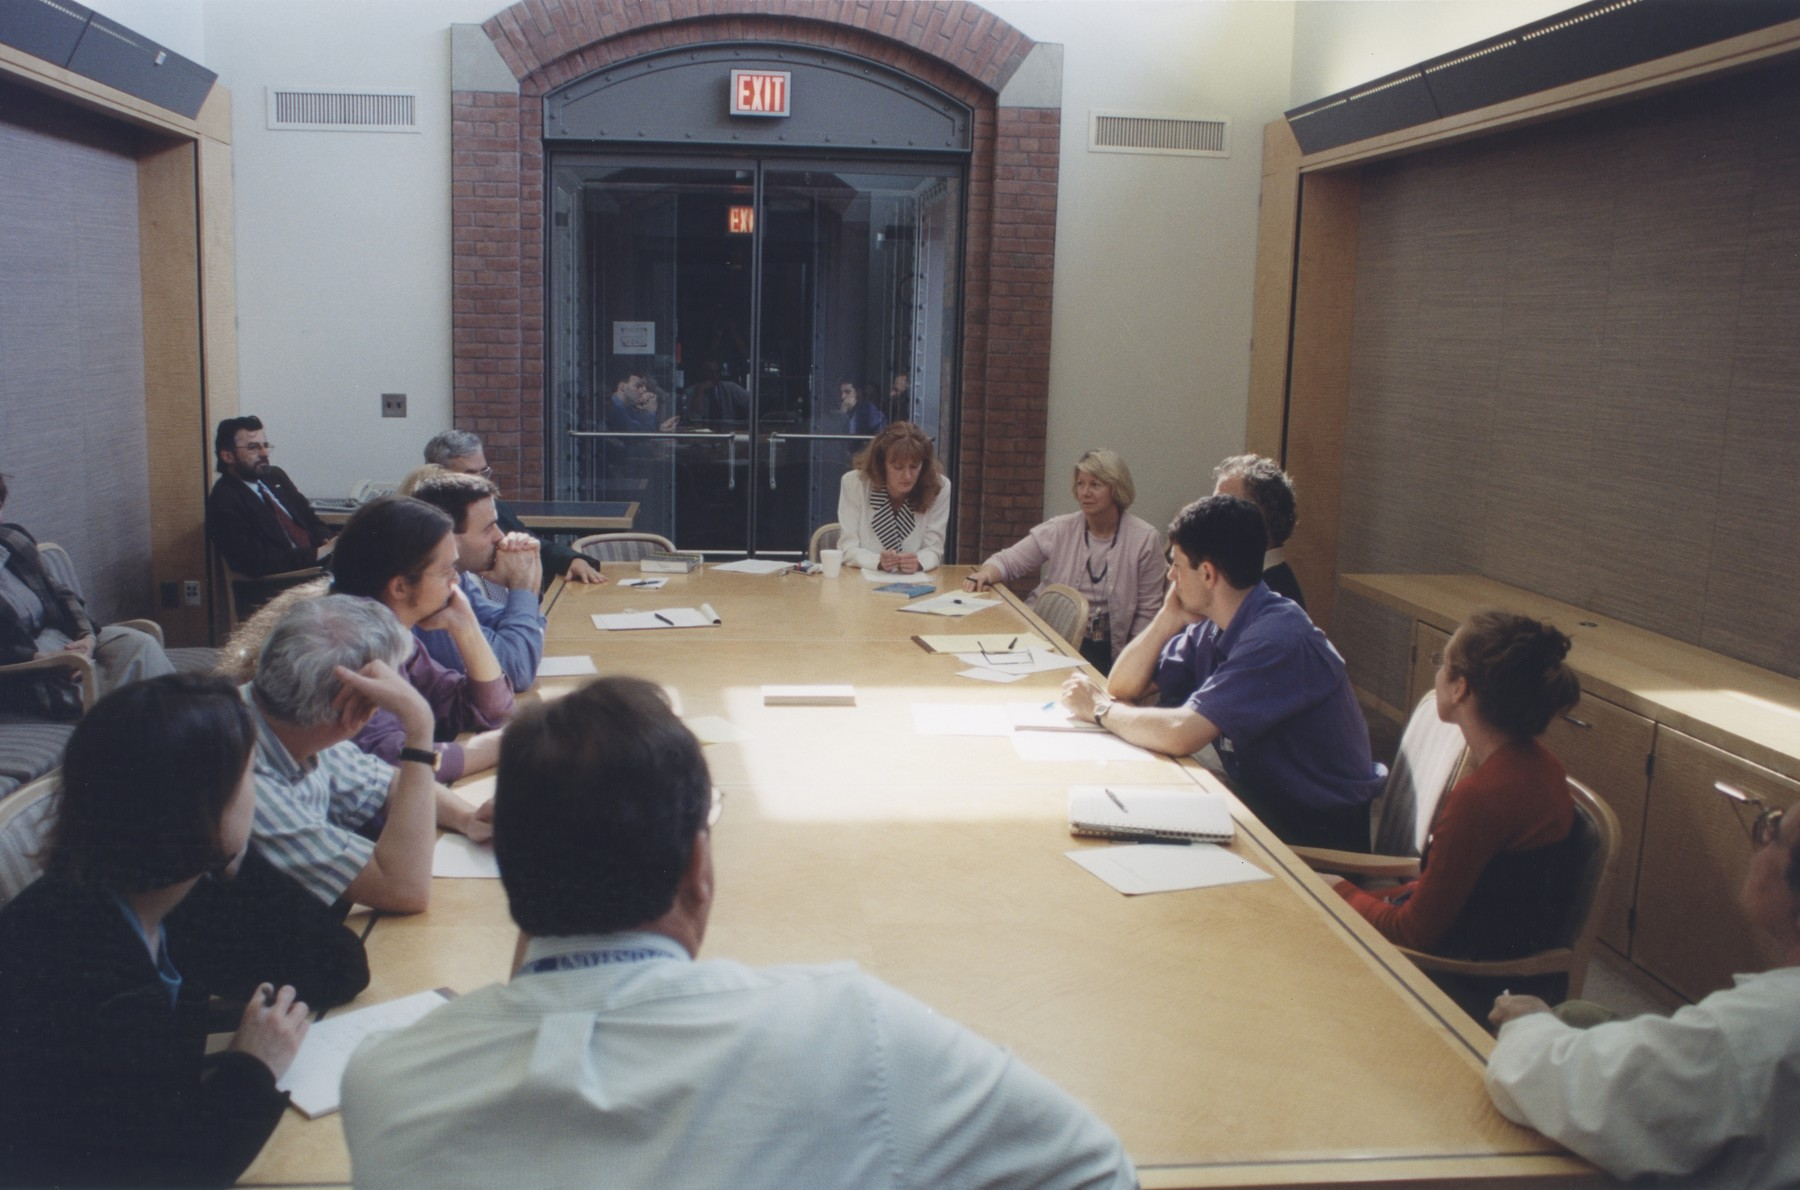 Visiting fellow Judith Molnar, a scholar of the Holocaust in Hungary at the University of Szeged, gives a presentation about her research at a Center for Advanced Holocaust Study Fellows Meeting at the U.S. Holocaust Memorial Museum.